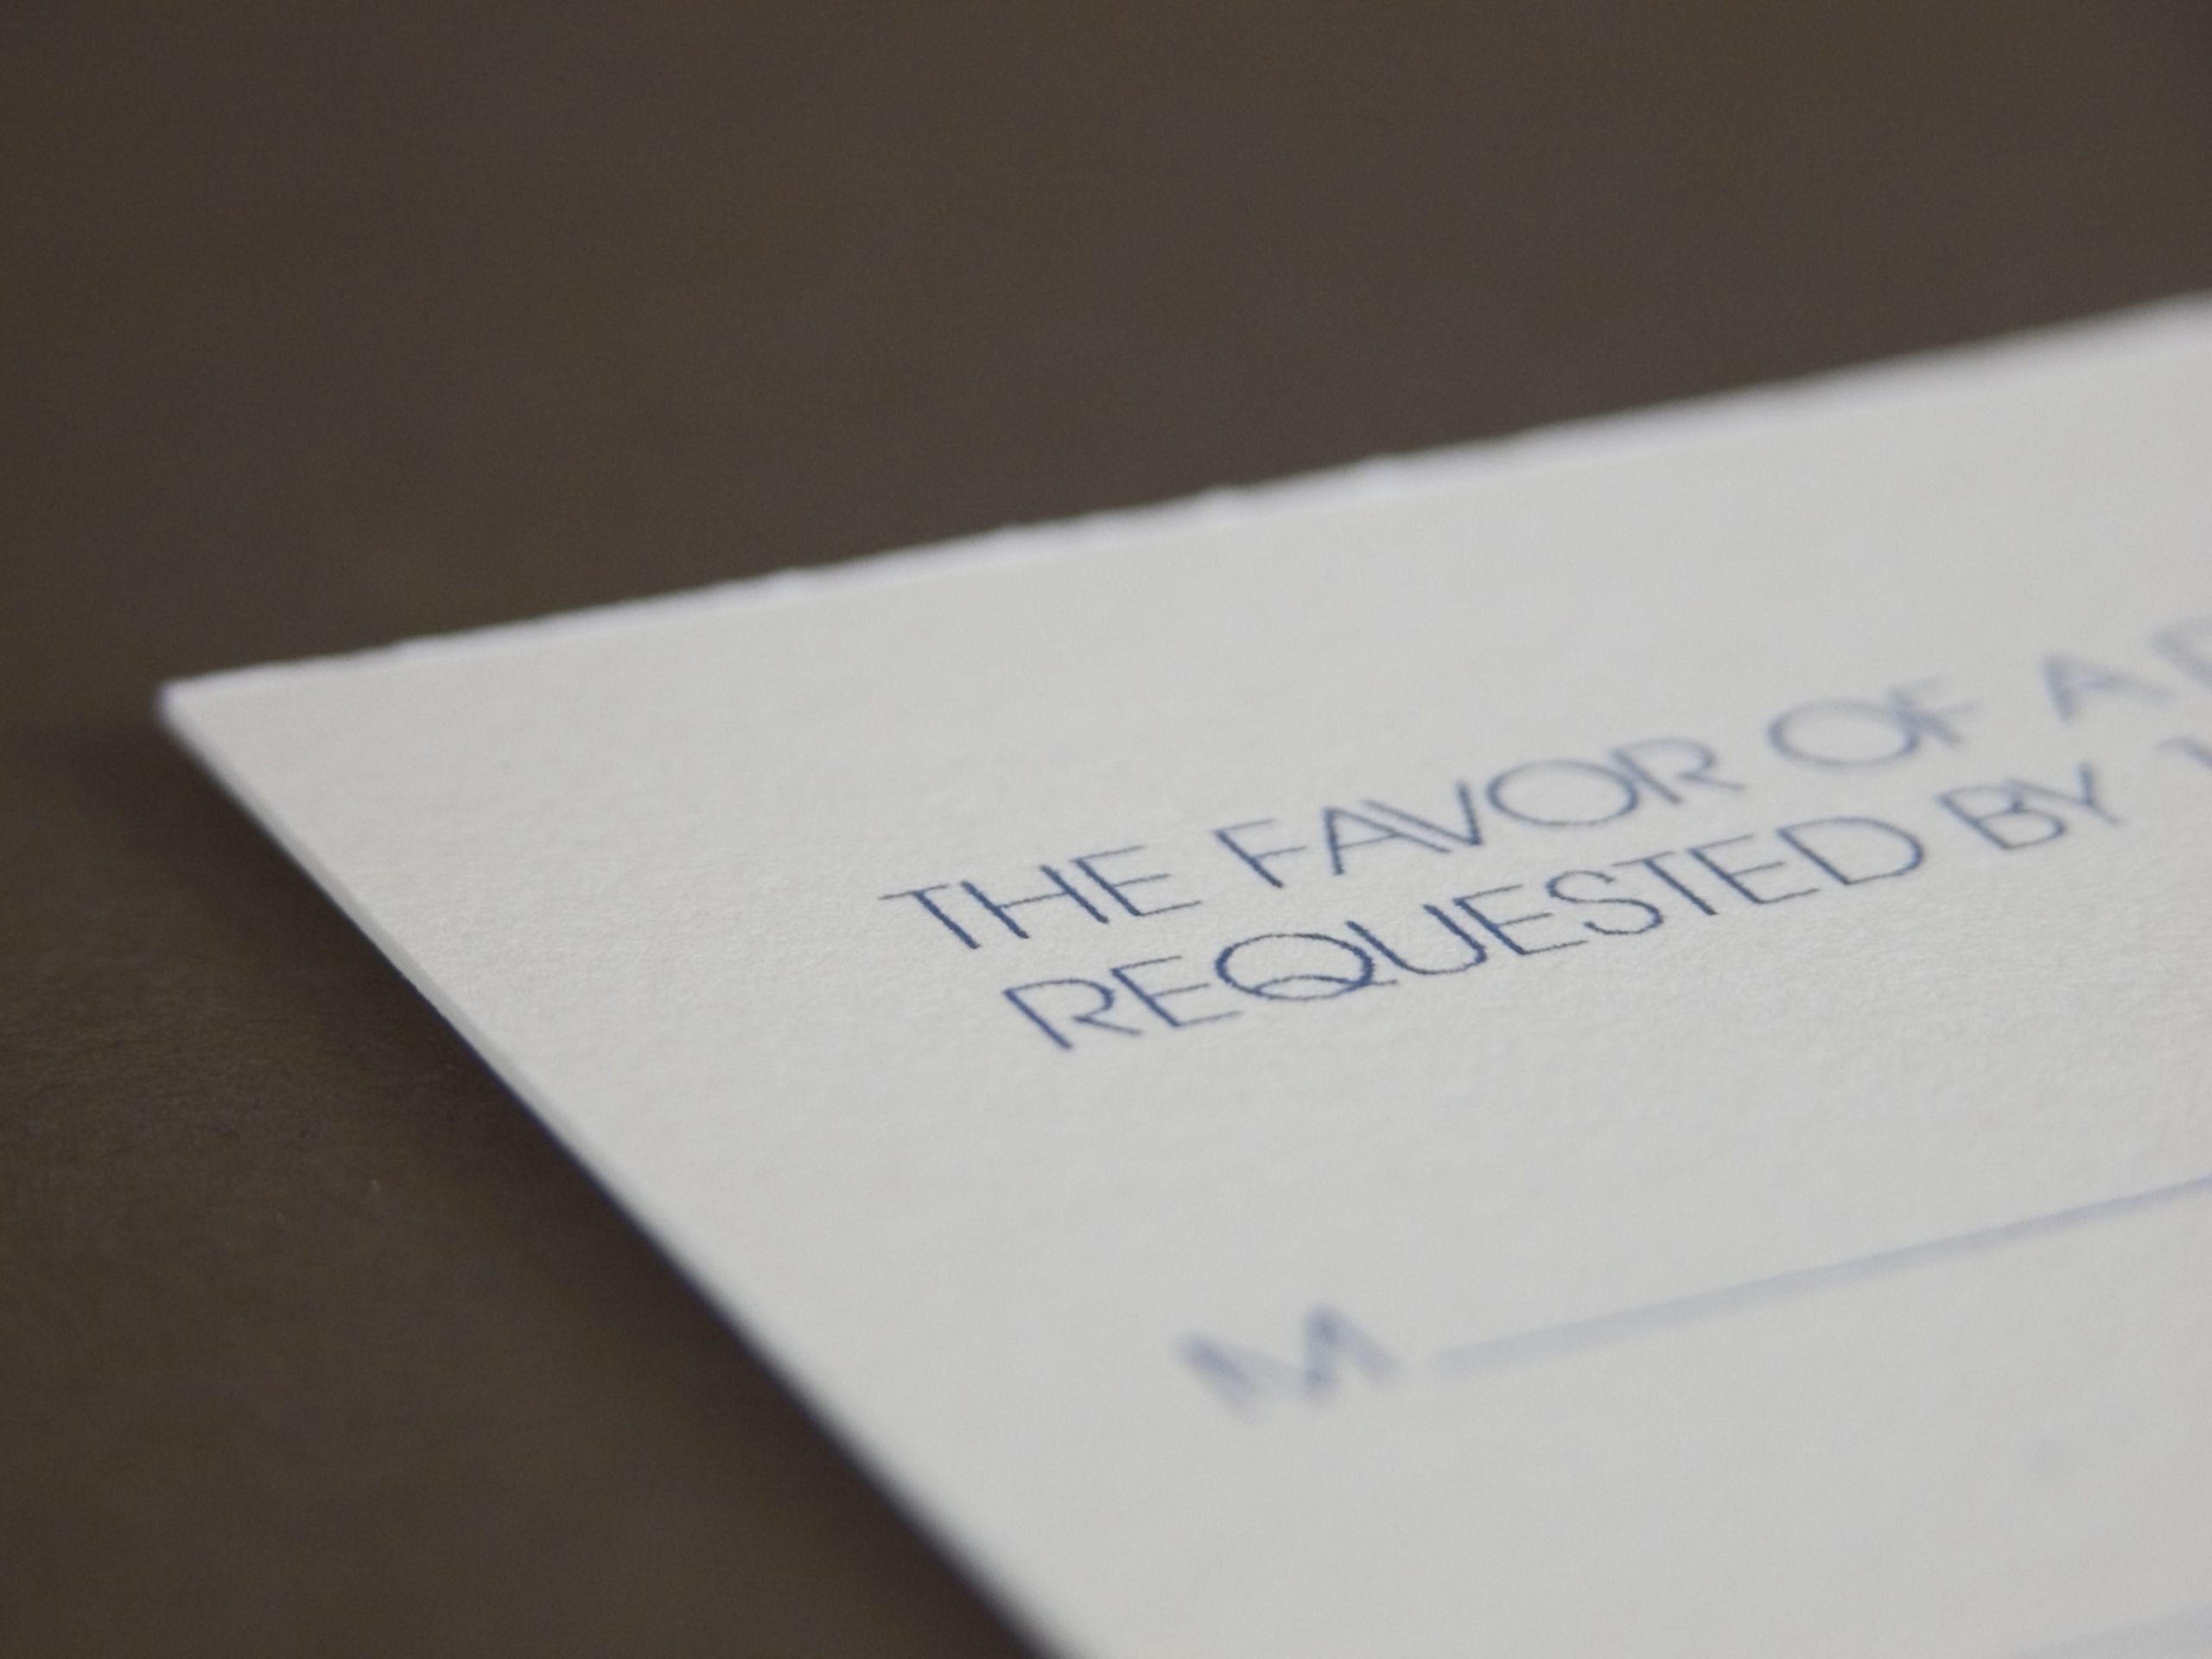 Wedding Invitations Labels Etiquette: How To Address Return Labels On Wedding Response Cards